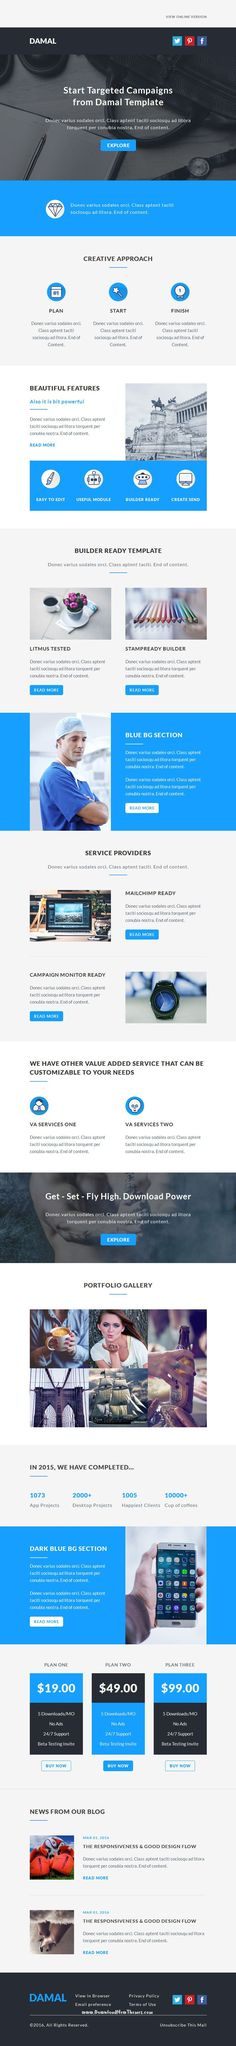 DAMAL is a multipurpose responsive #emailtemplate suitable for any kind of corporate, business, office and general category. It contains one email template and PSD file. All templates are StampReady, MailChimp & Campaign Monitor compatible. #newsletter #marketing